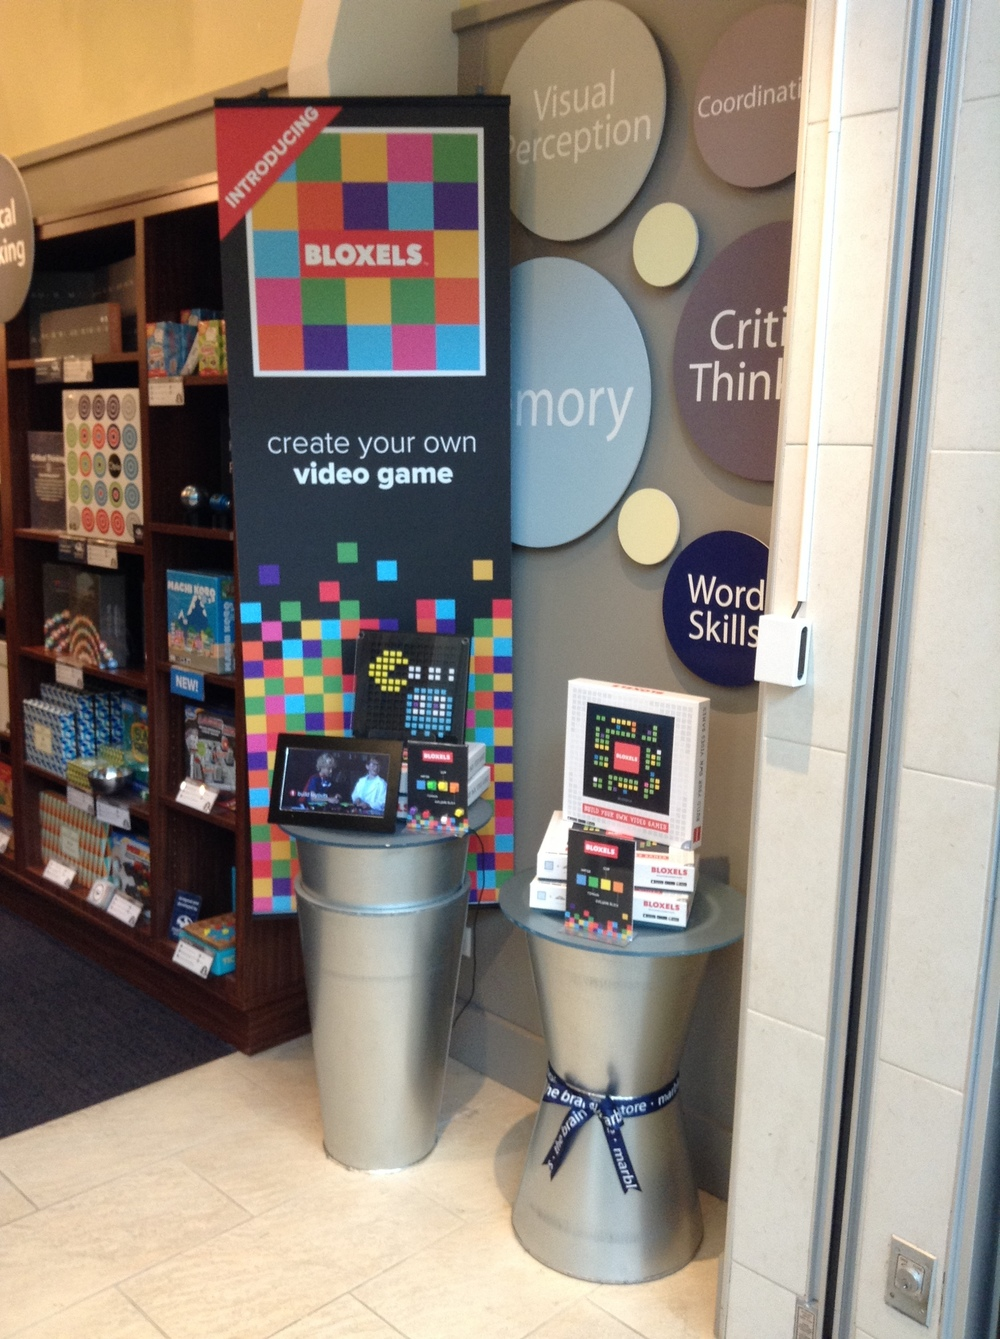 The Bloxels display at the Columbia, Maryland store.